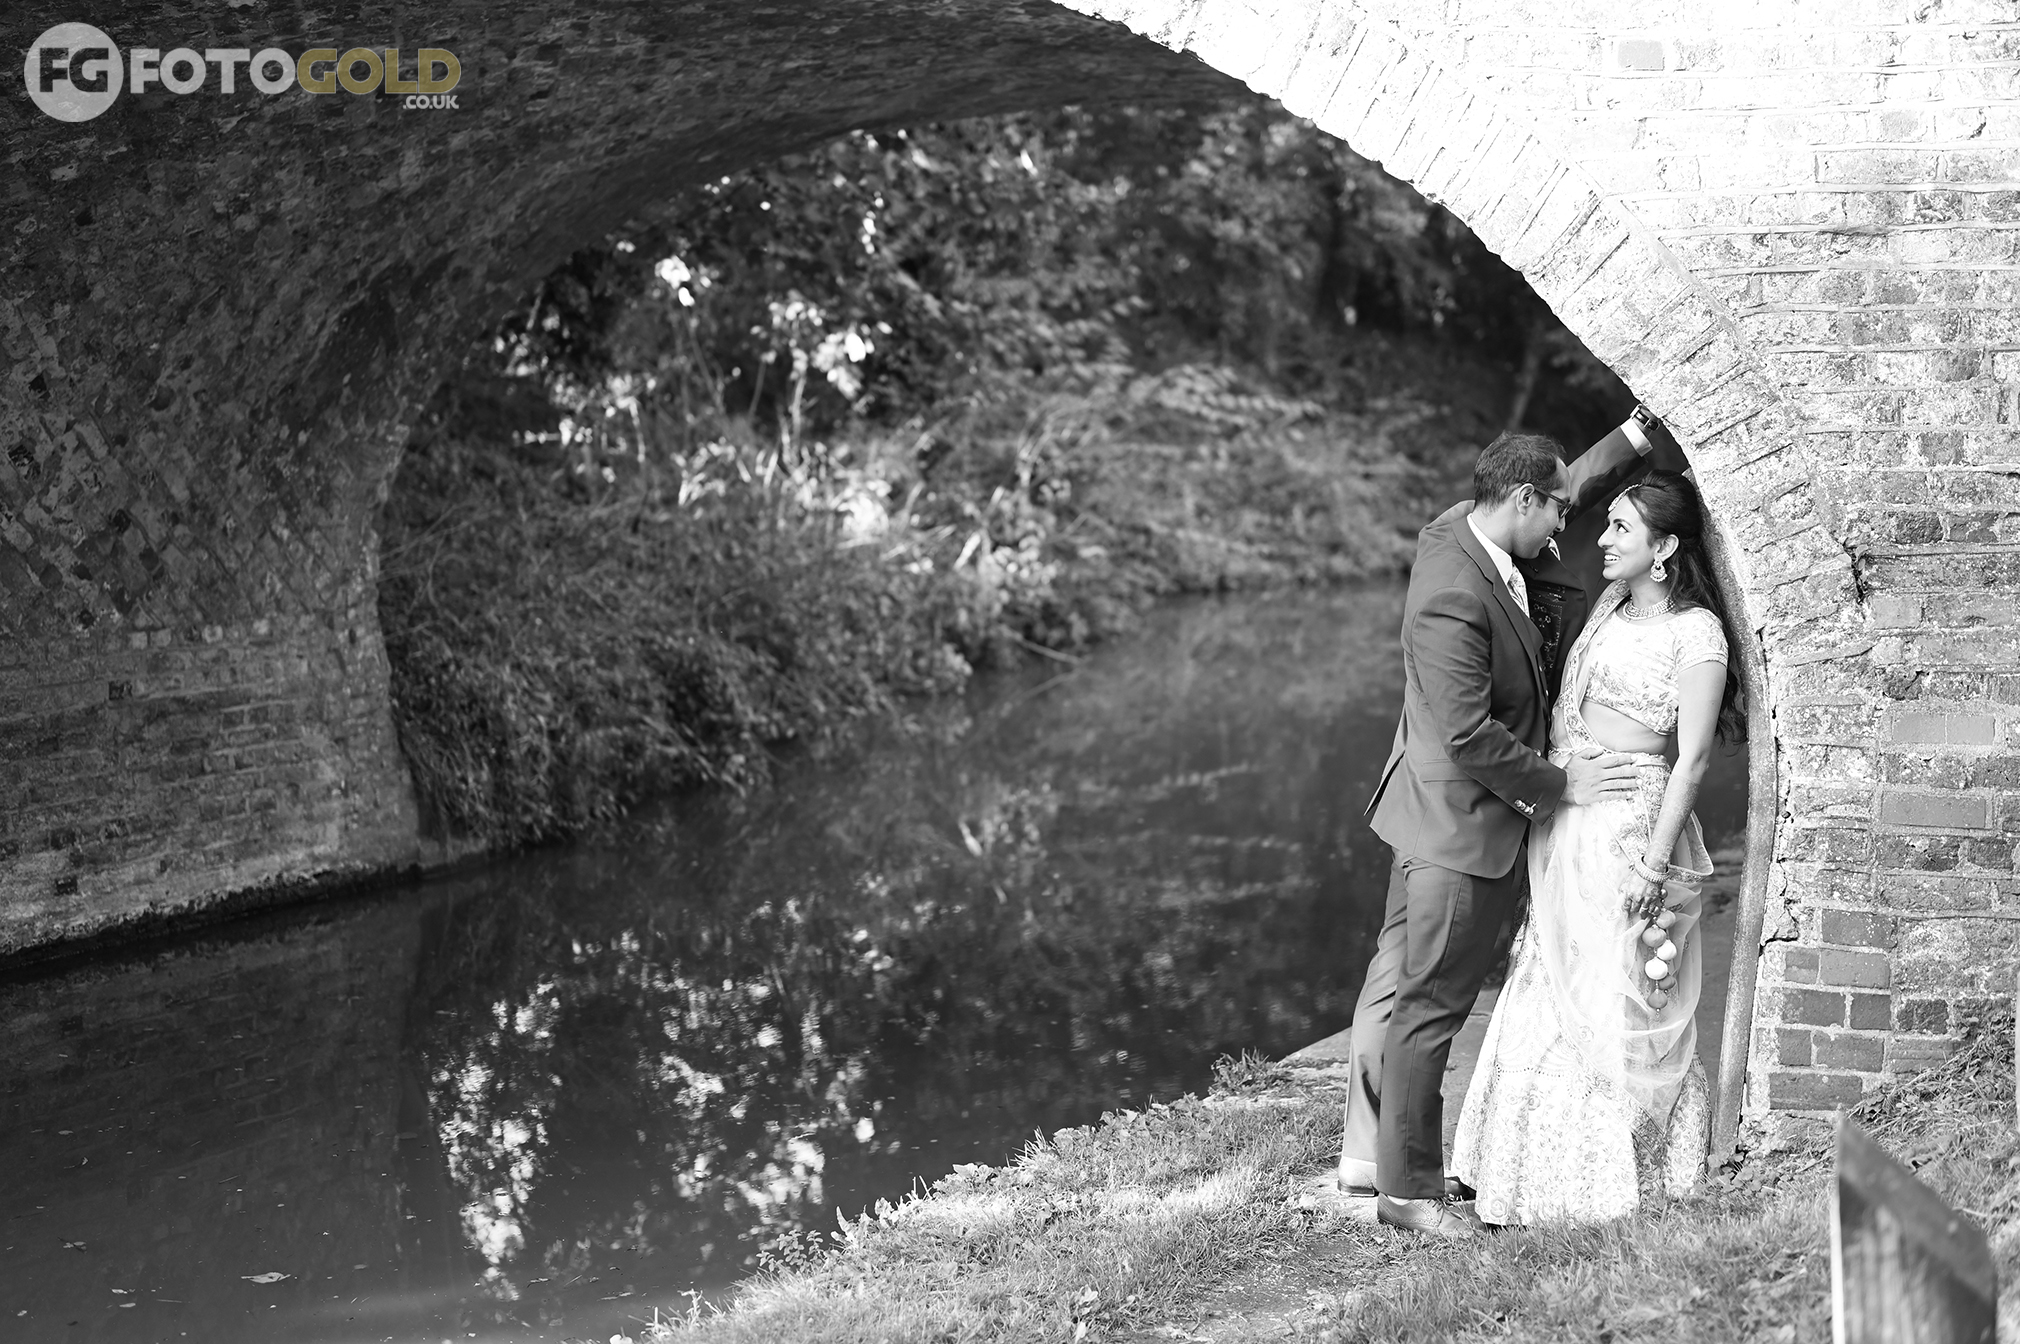 Foto Gold Northampton Wedding Photography